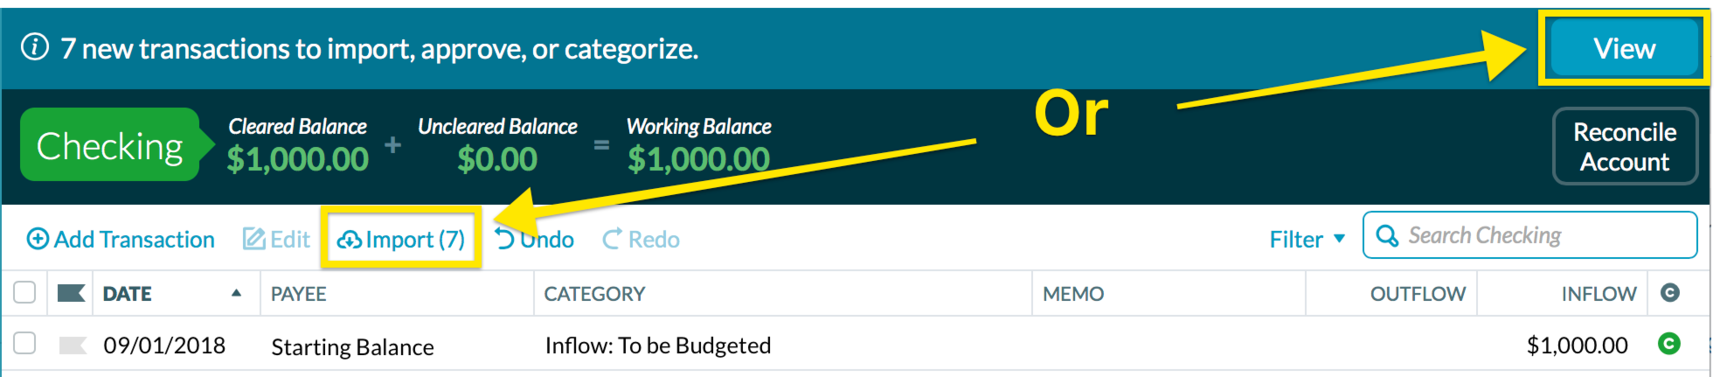 How often does YNAB sync, and how can you tell if it